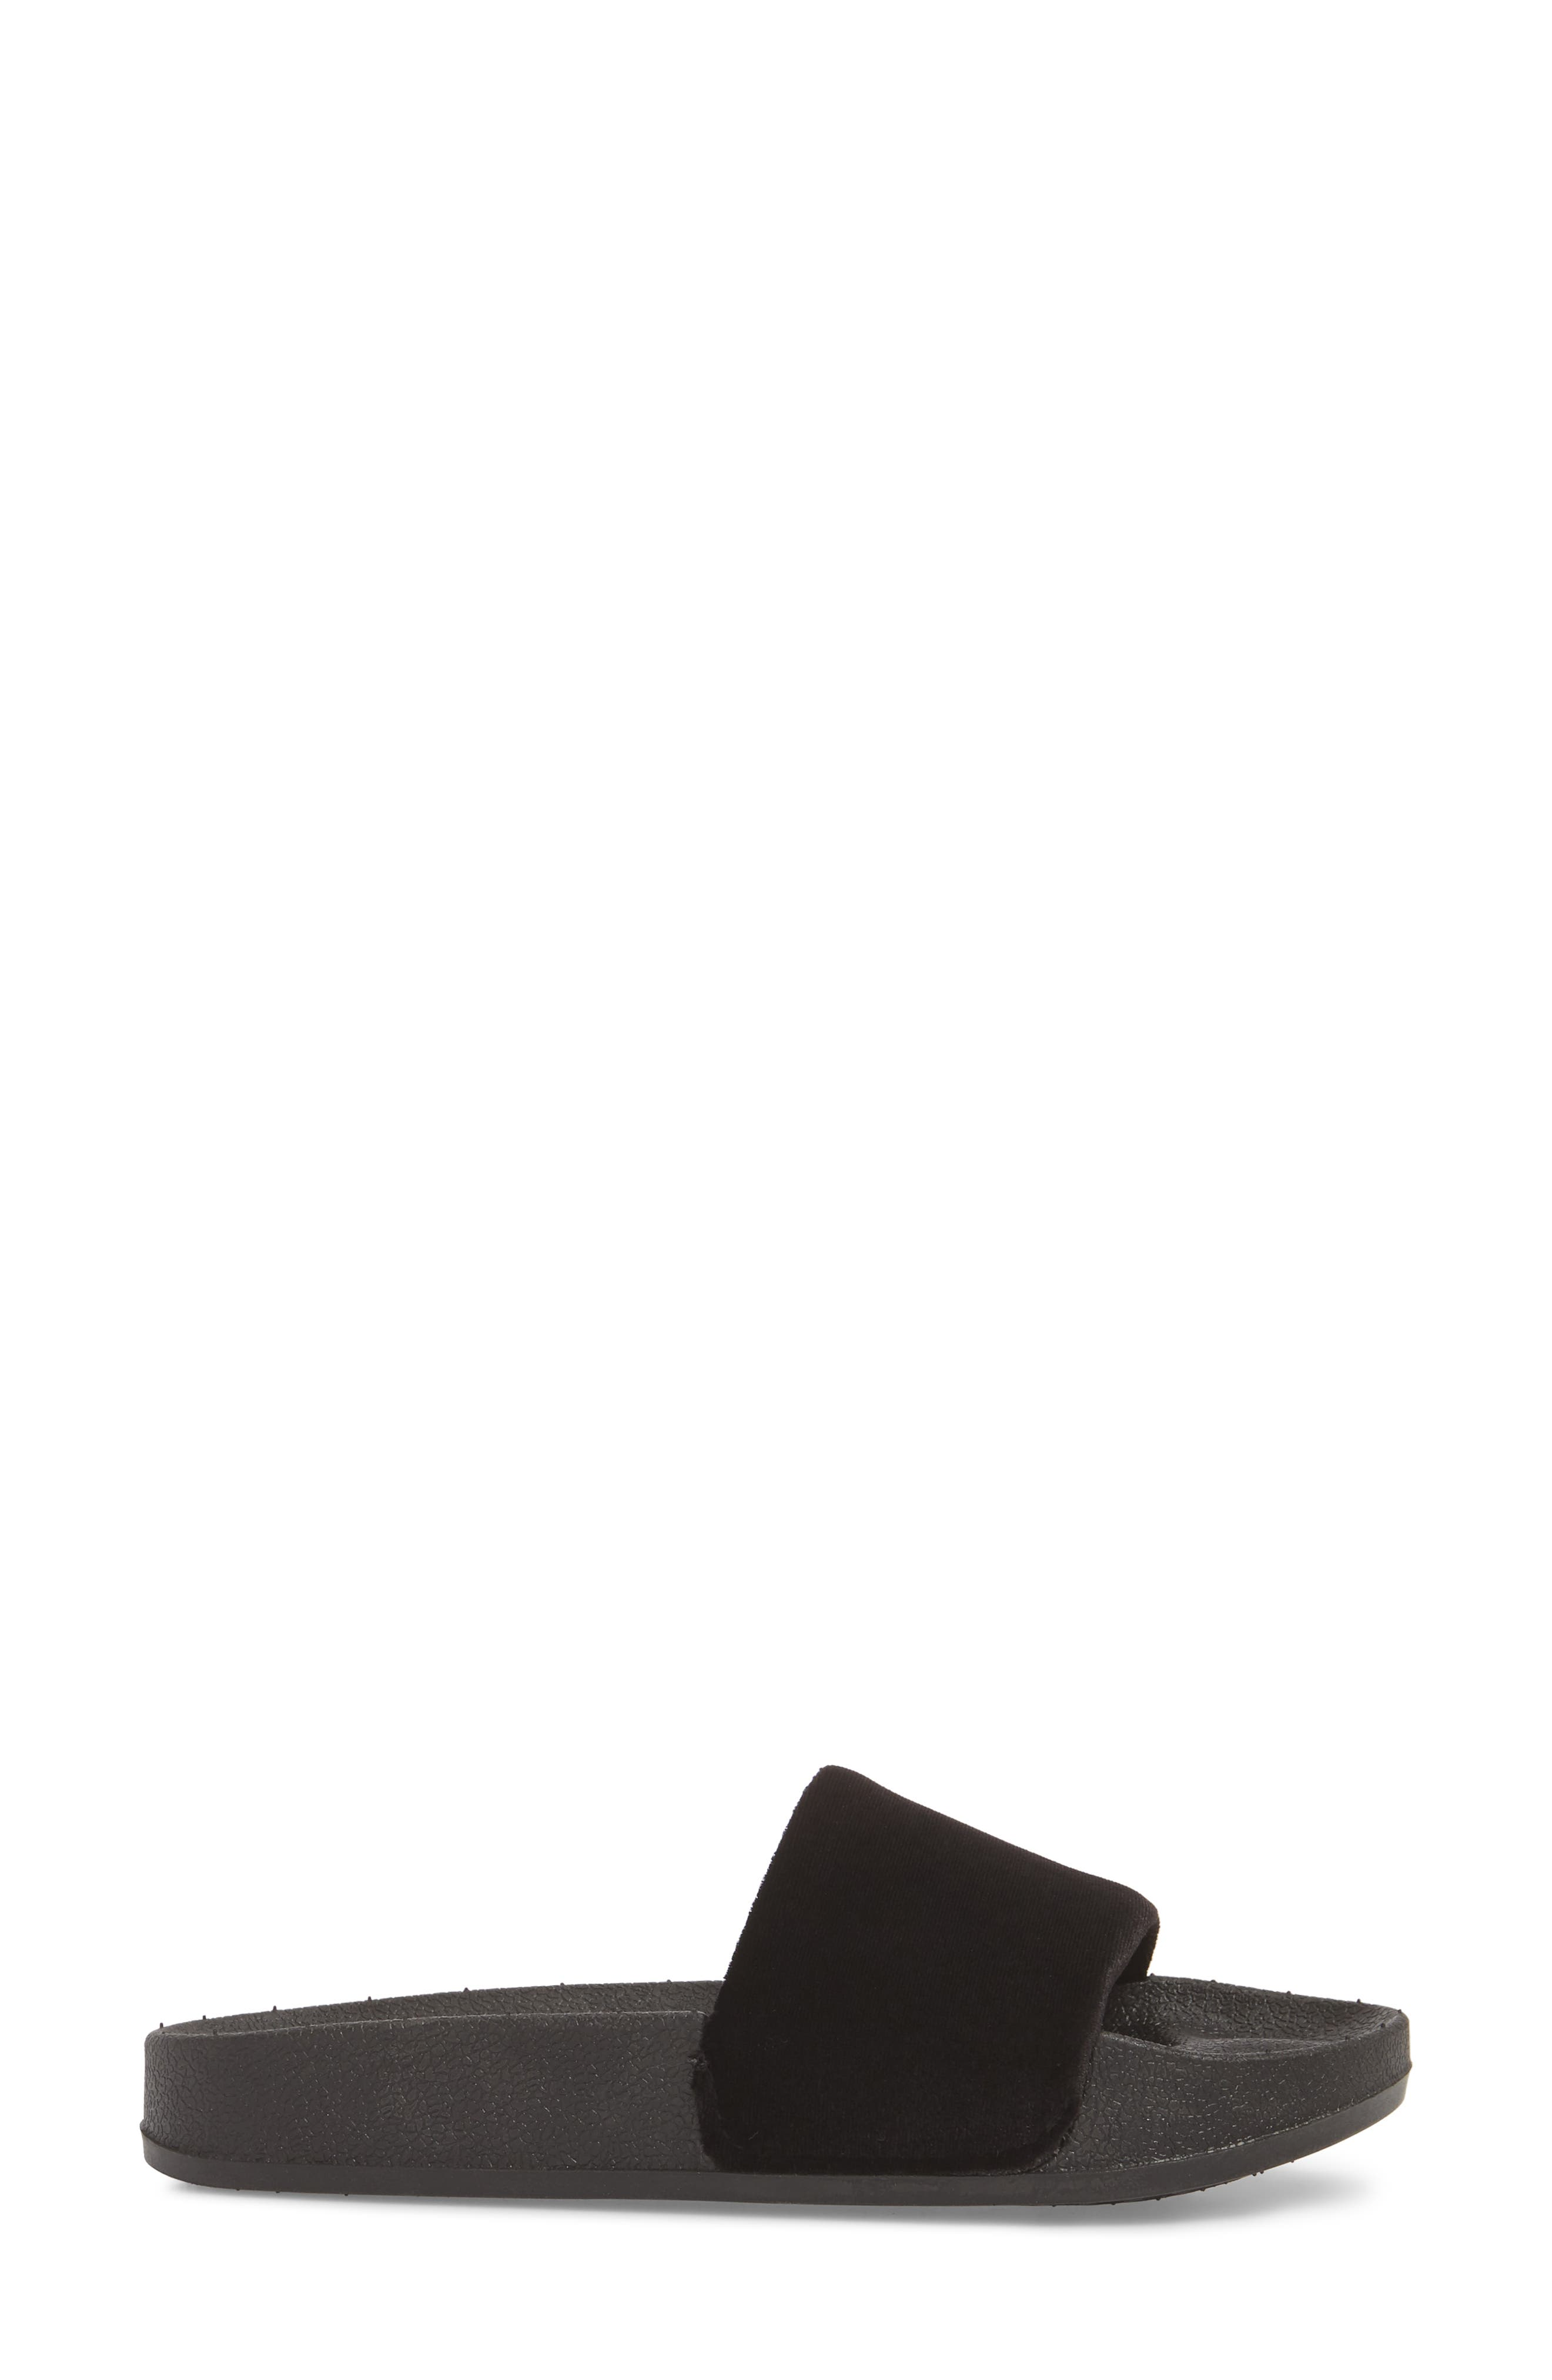 Slide Sandal,                             Alternate thumbnail 3, color,                             BLACK